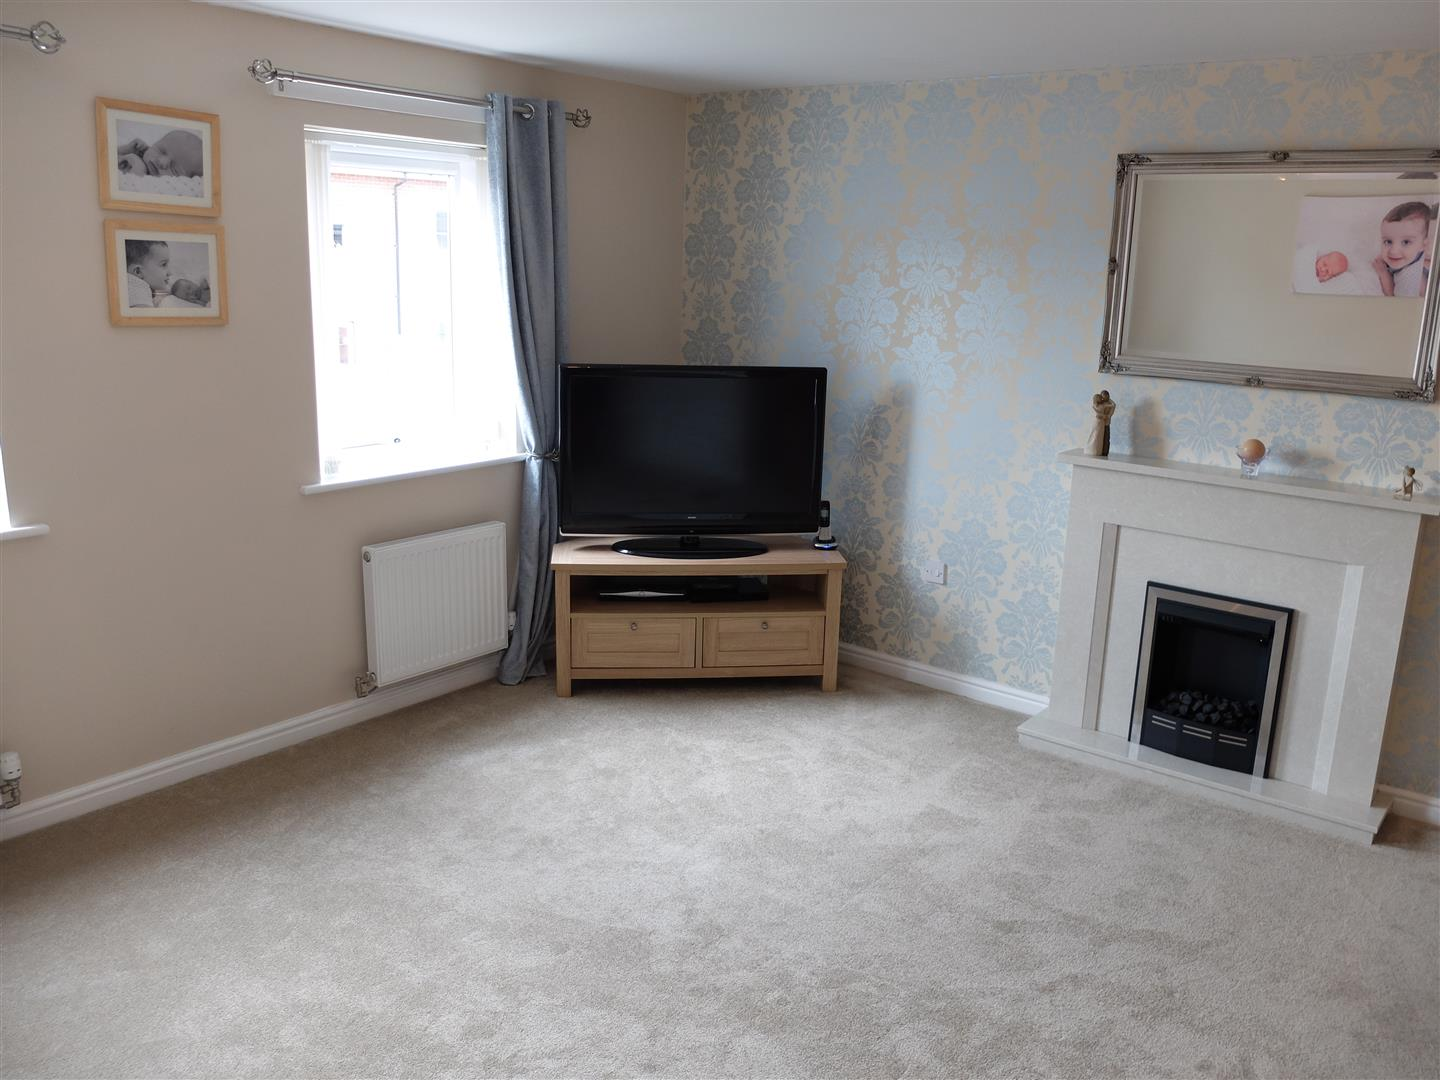 4 Bedrooms House - Townhouse On Sale 16 Tramside Way Carlisle 38,000